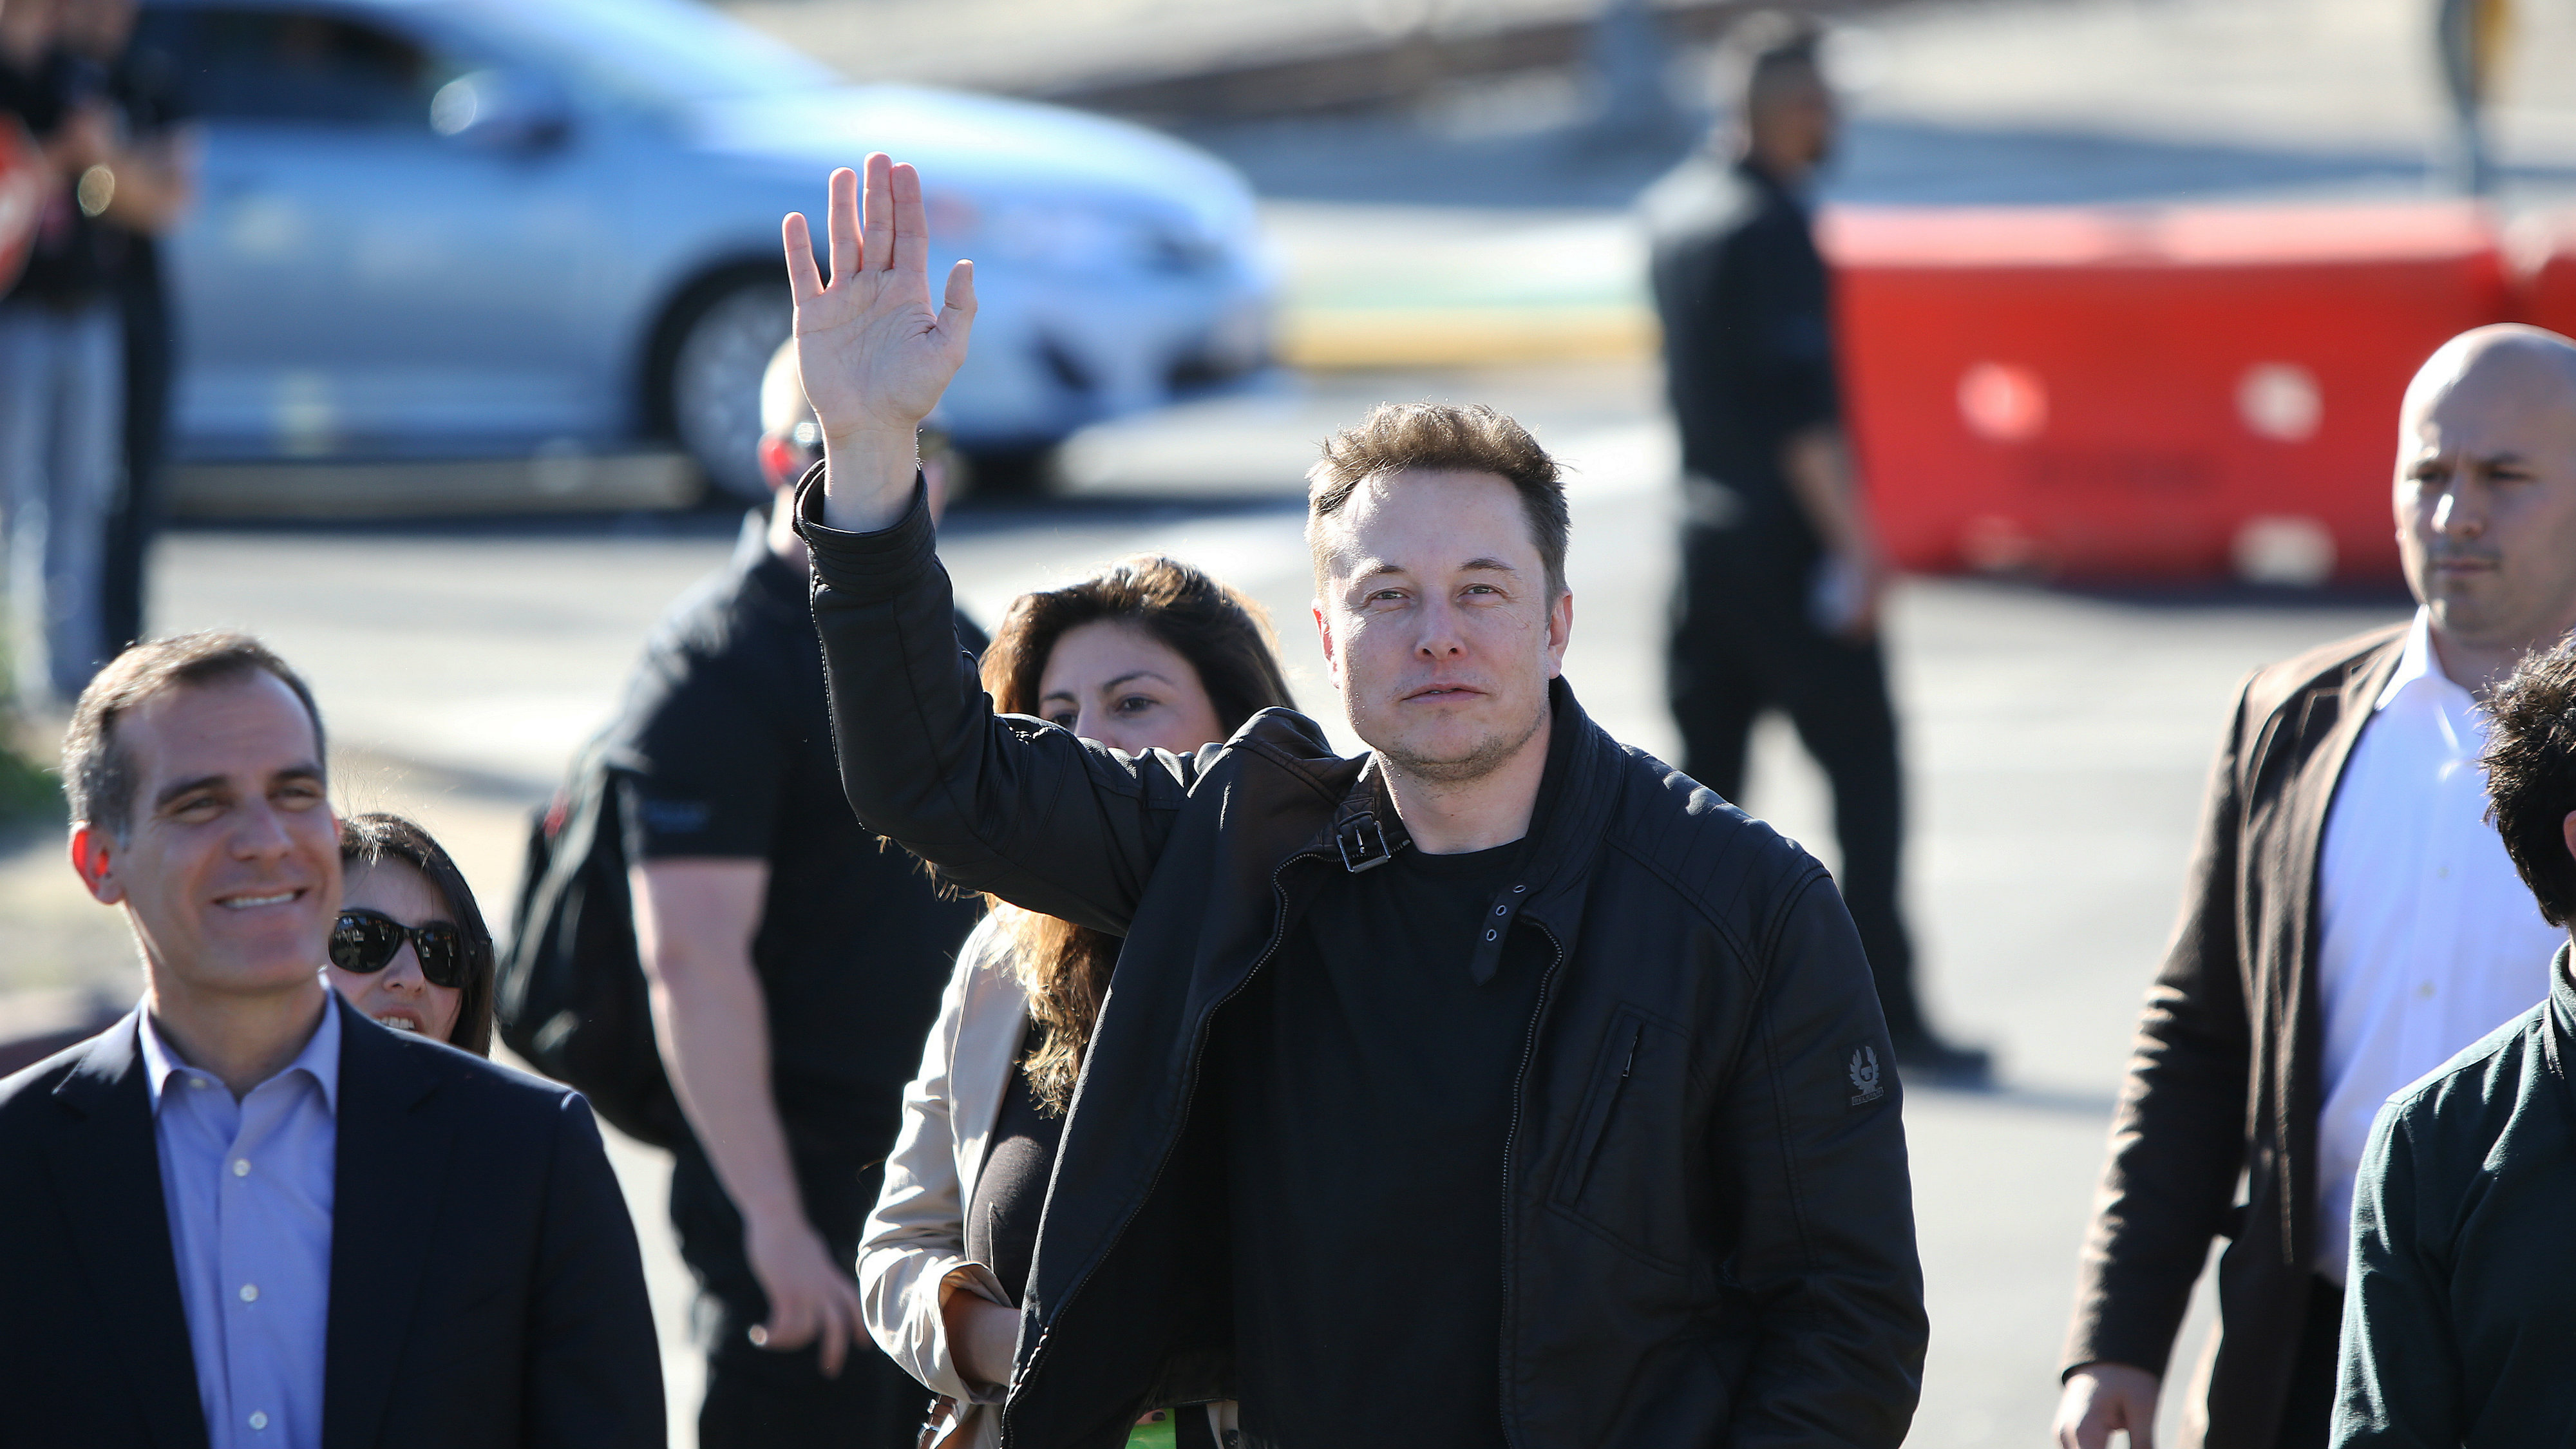 Elon Musk, founder and CEO of SpaceX arrives with Los Angeles Mayor Eric Garrett for the SpaceX Hyperloop Pod Competition in Hawthorne, Los Angeles, California, U.S., January 29, 2017.